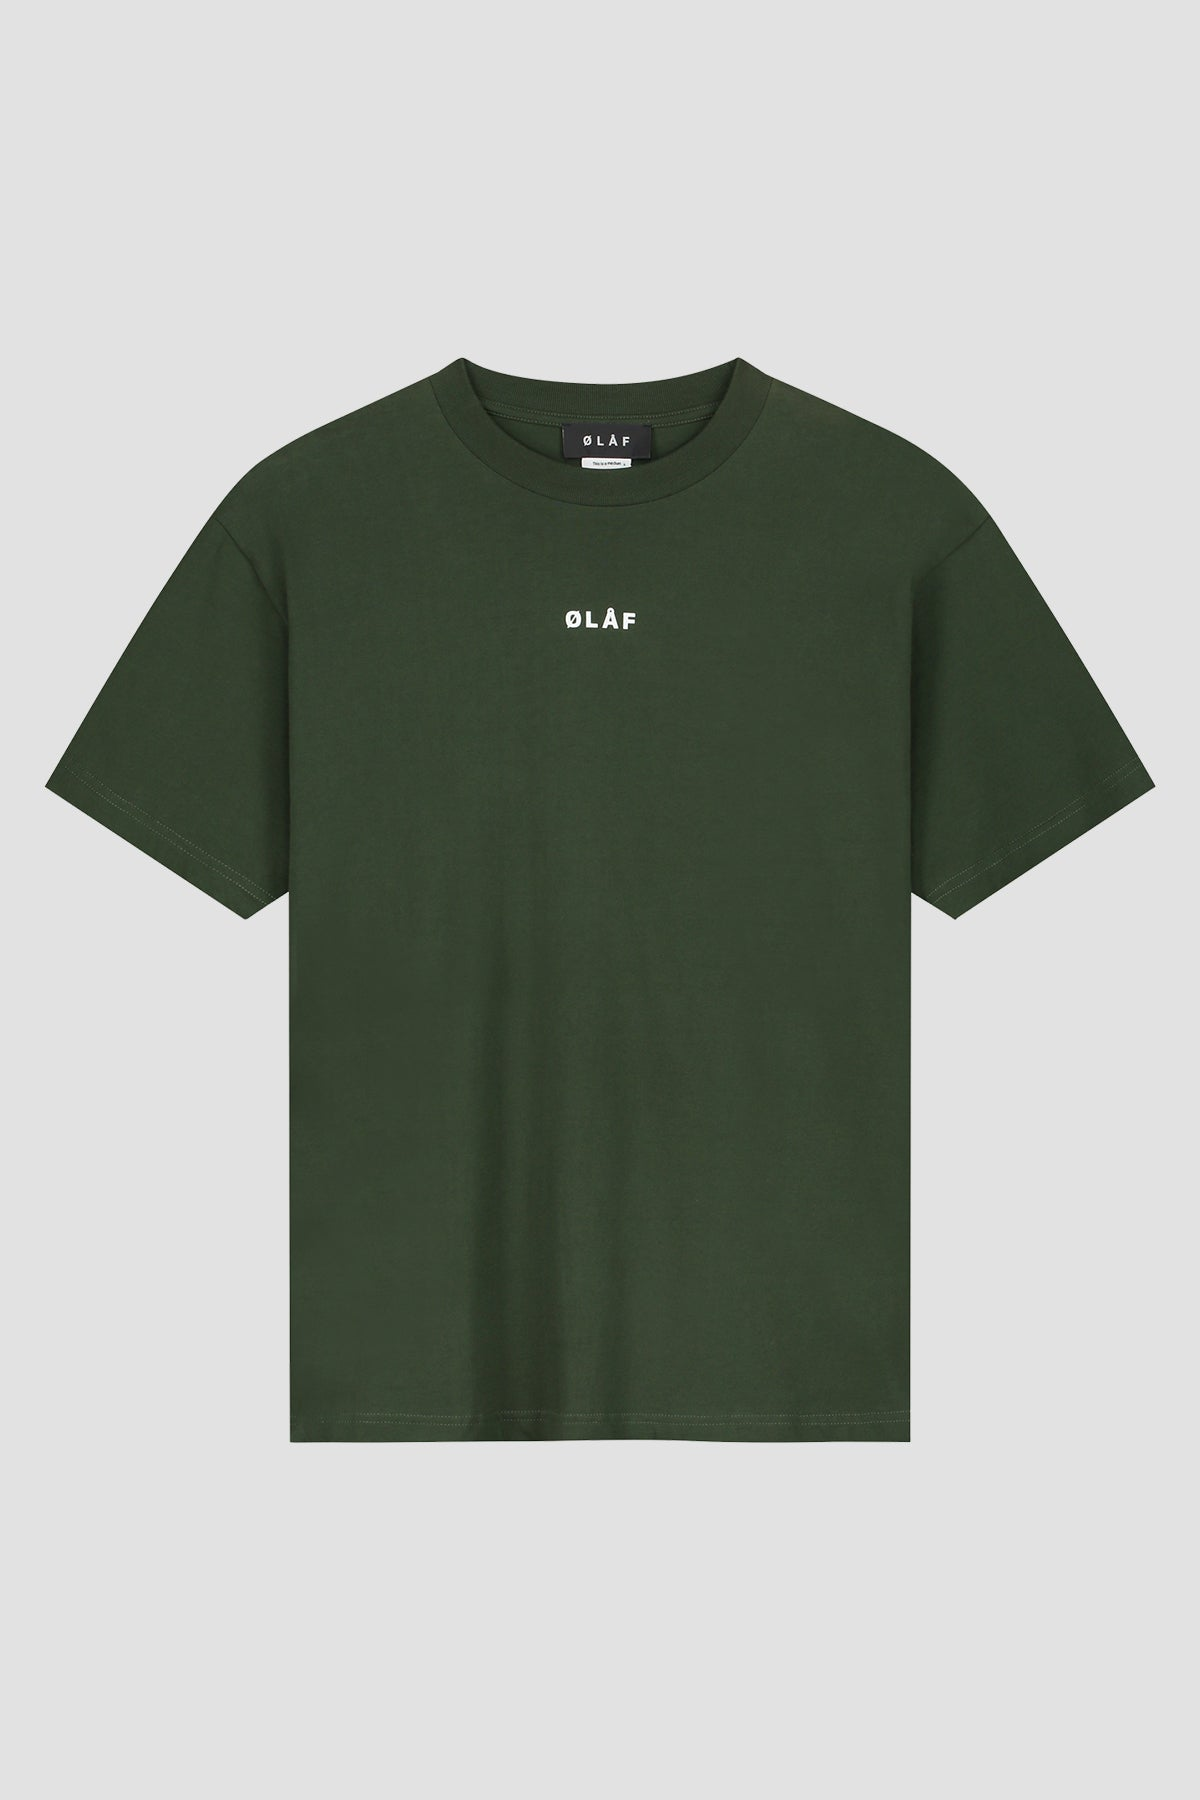 ØLÅF Block Tee - Dark Forest